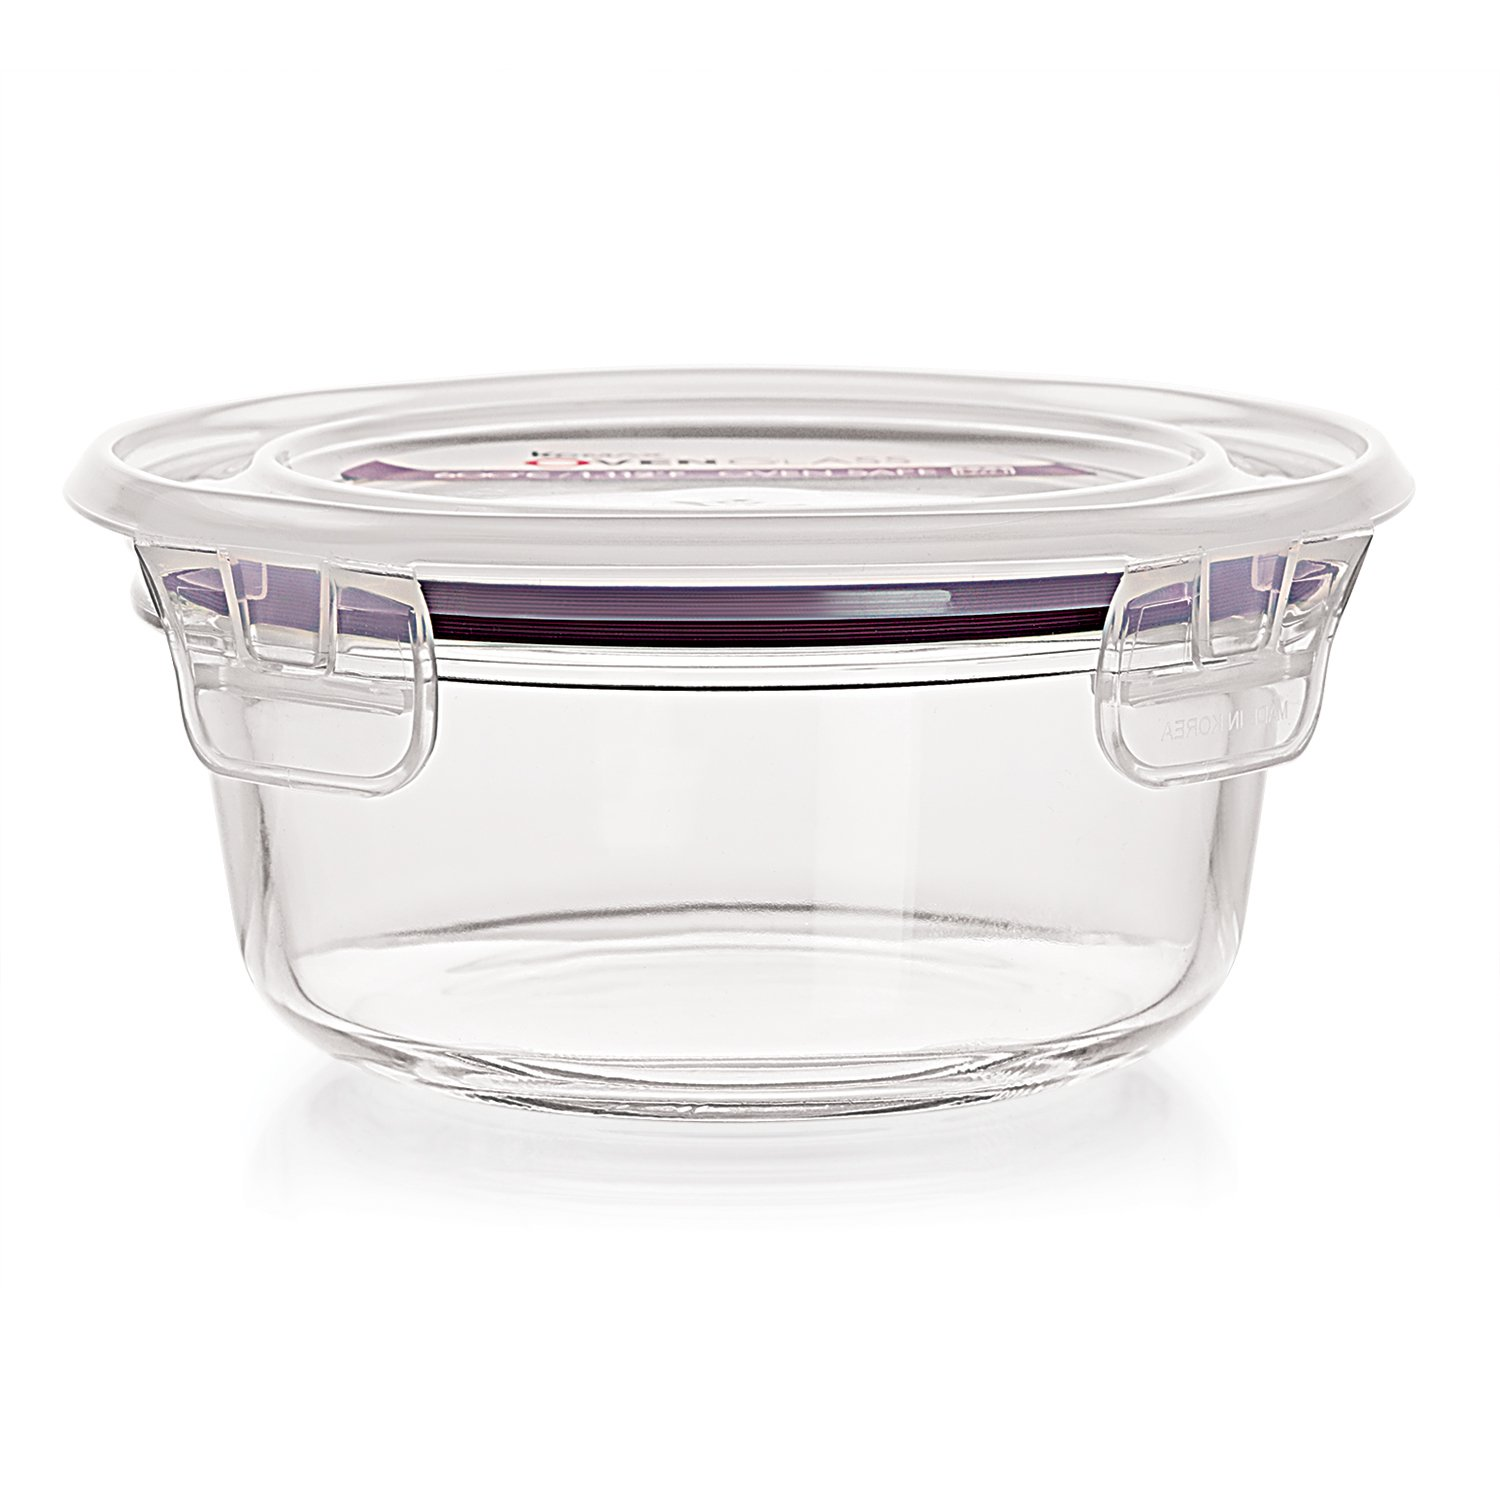 Cello Vero Round Glass Container with Lid, 400ml/6.8cm, Clear